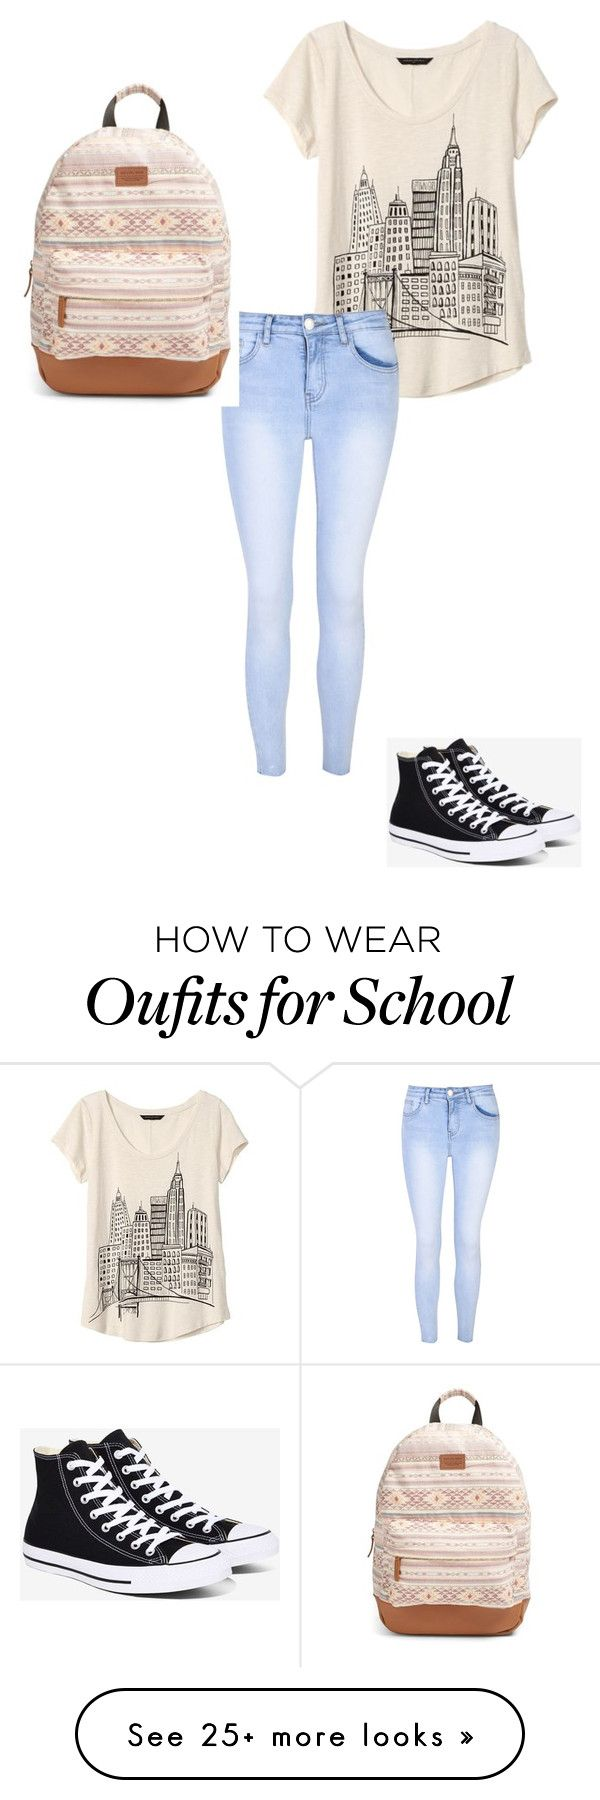 """Back to school"" by explorer-14670533066 on Polyvore featuring Banana Republic, Glamorous, Converse and Rip Curl"